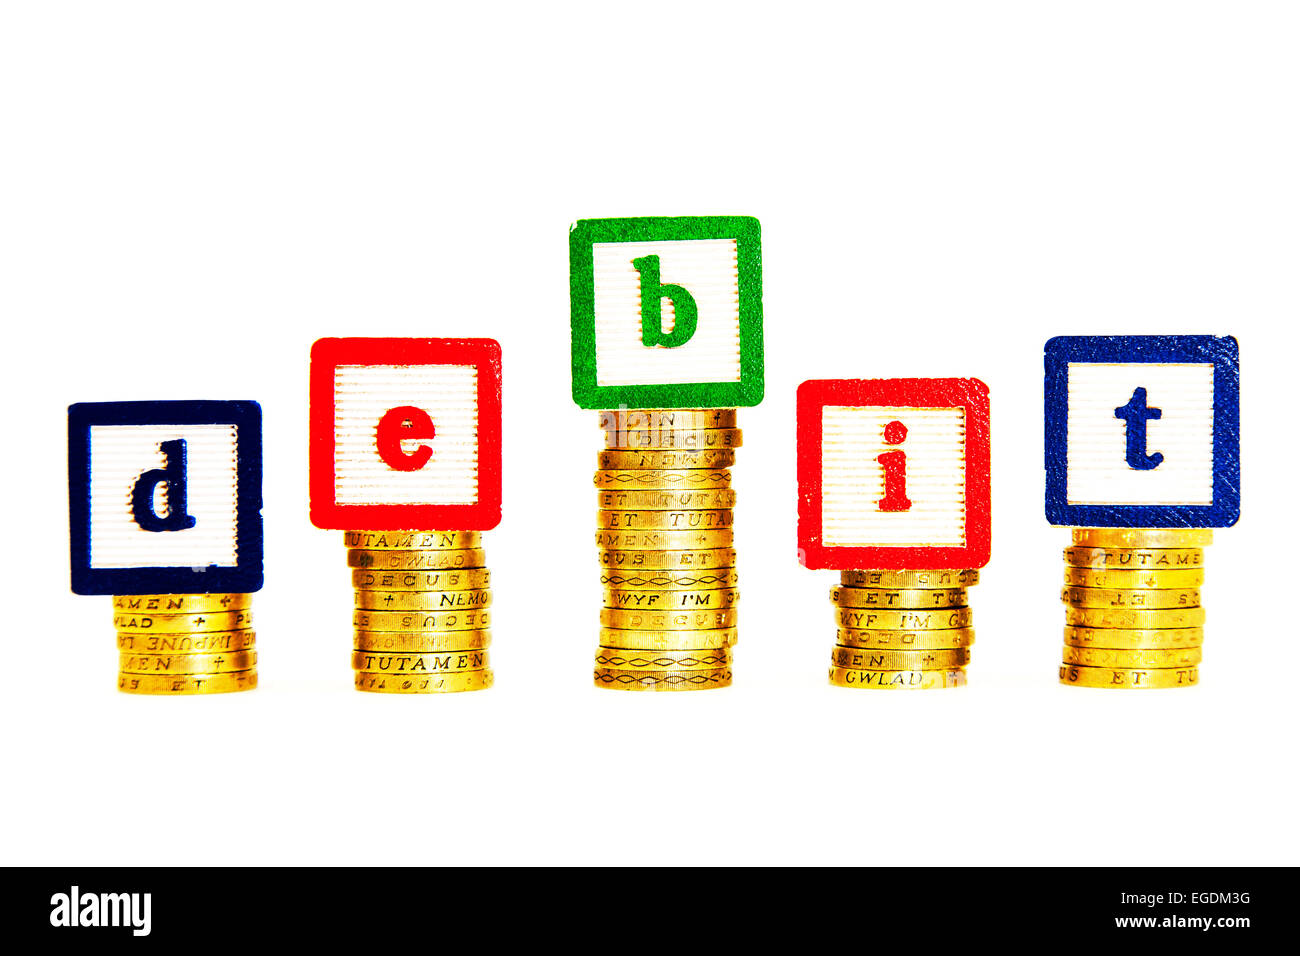 debit card money minus deduct cash pounds debits deducts cutout cut out white background copy space Stock Photo